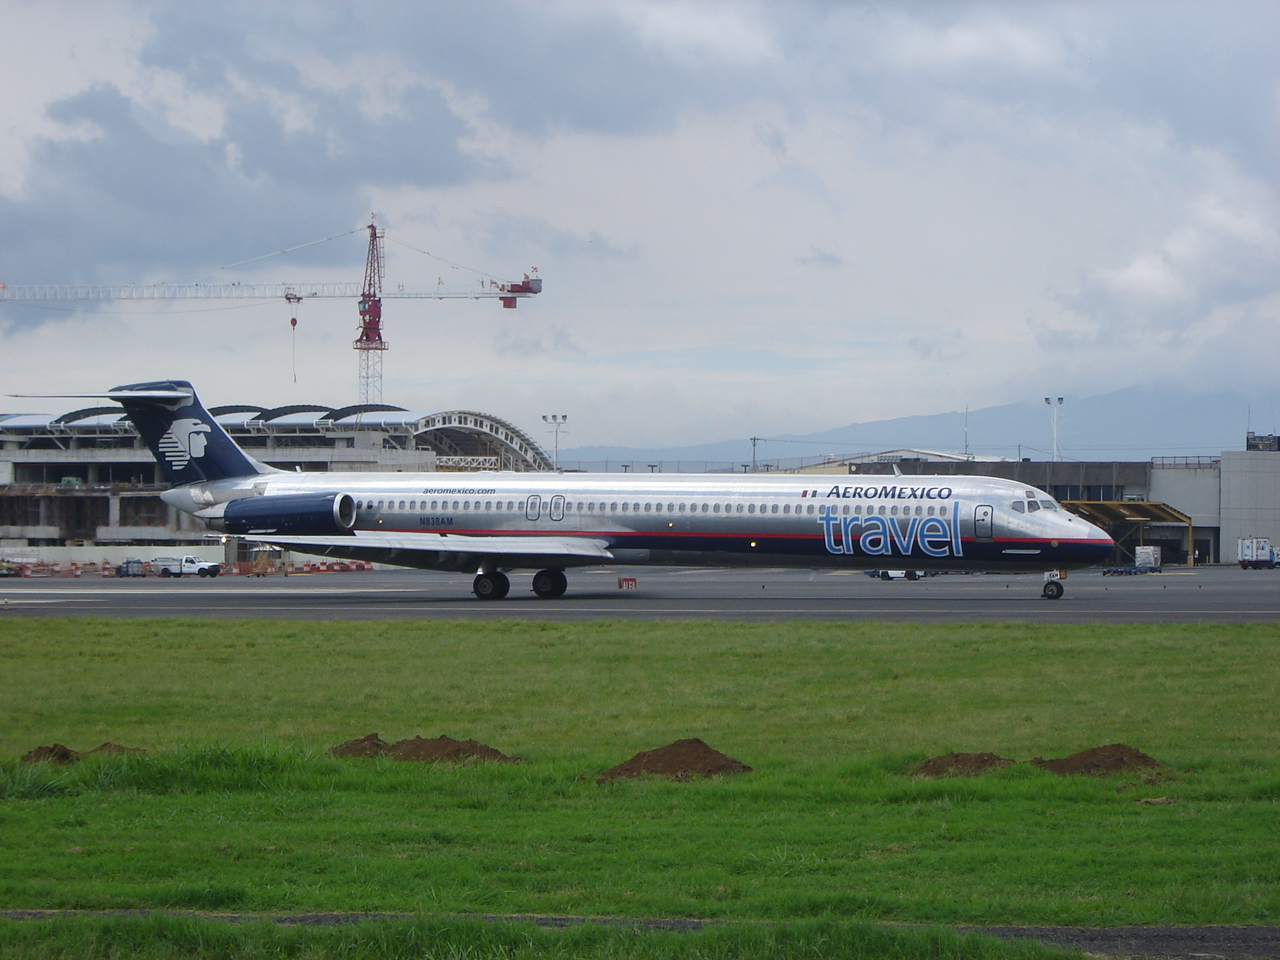 an image of travel Aeroméxico Travel - Wikipedia, the free encyclopedia